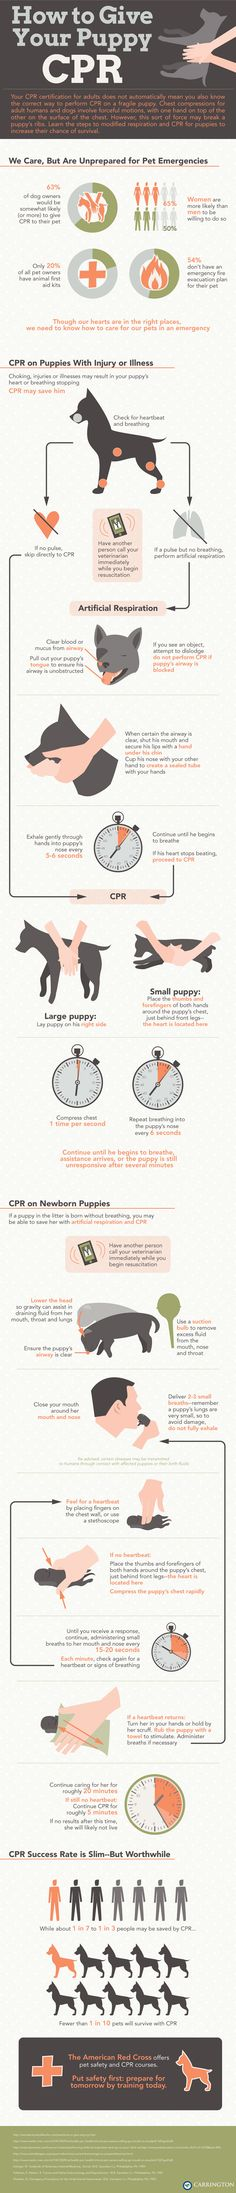 How To Give Your Puppy CPR [INFOGRAPHIC] – Infographic List